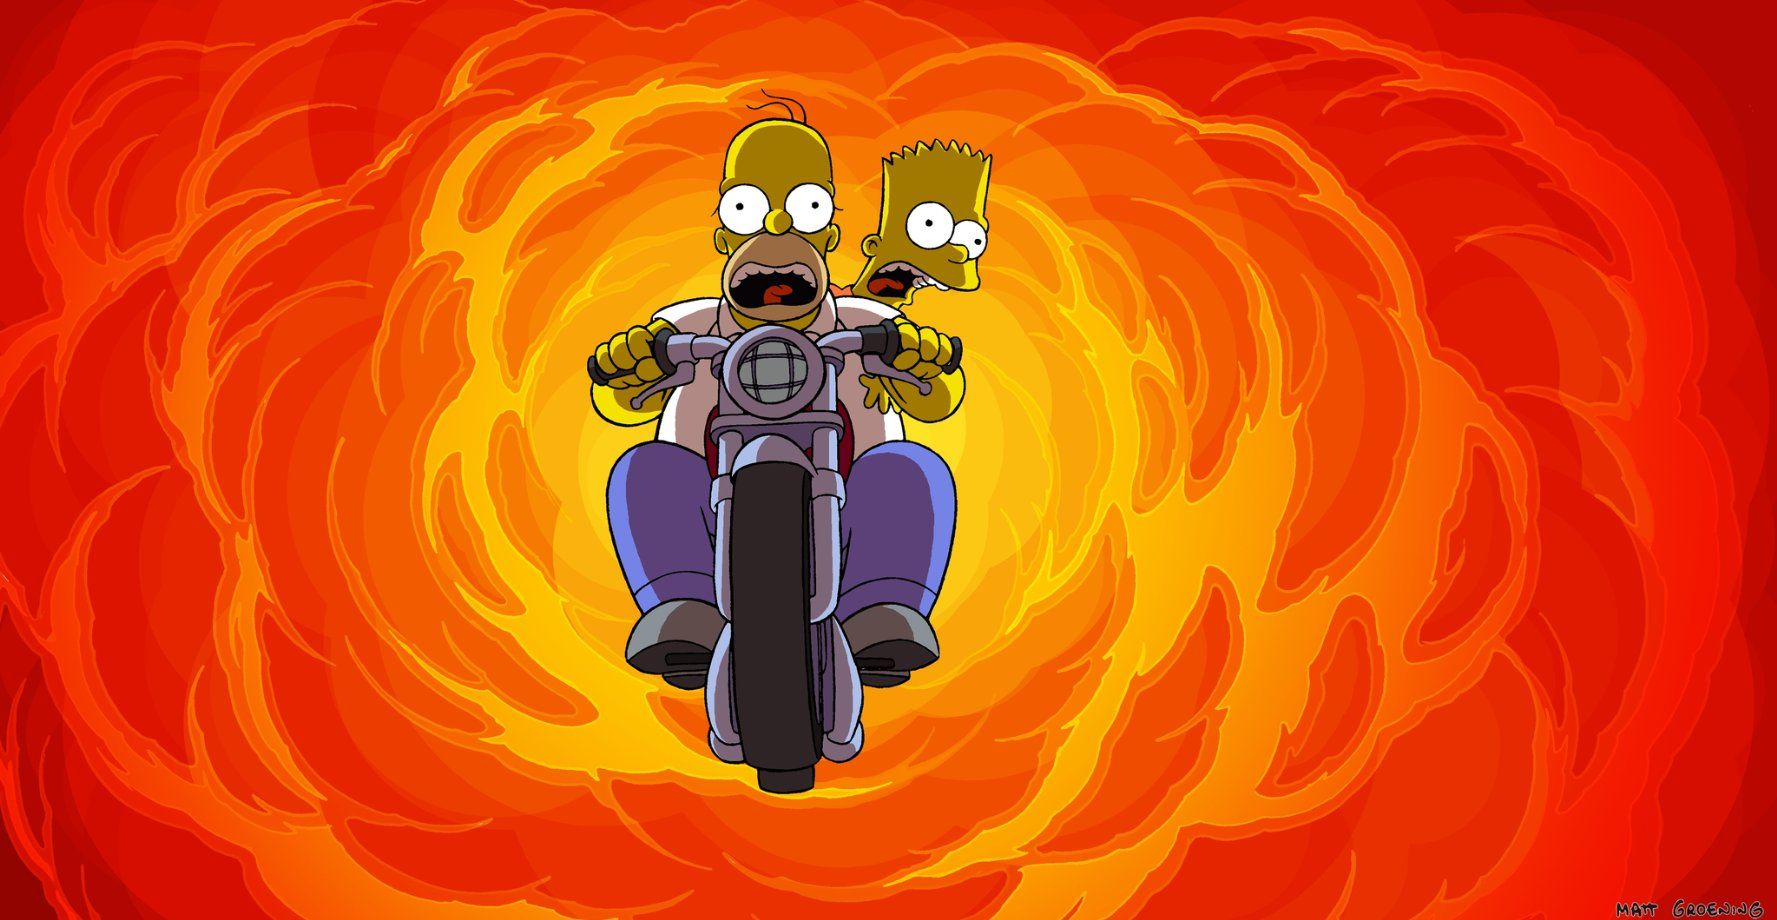 Simpsons Movie 2 Sequel Still A Possibility Collider